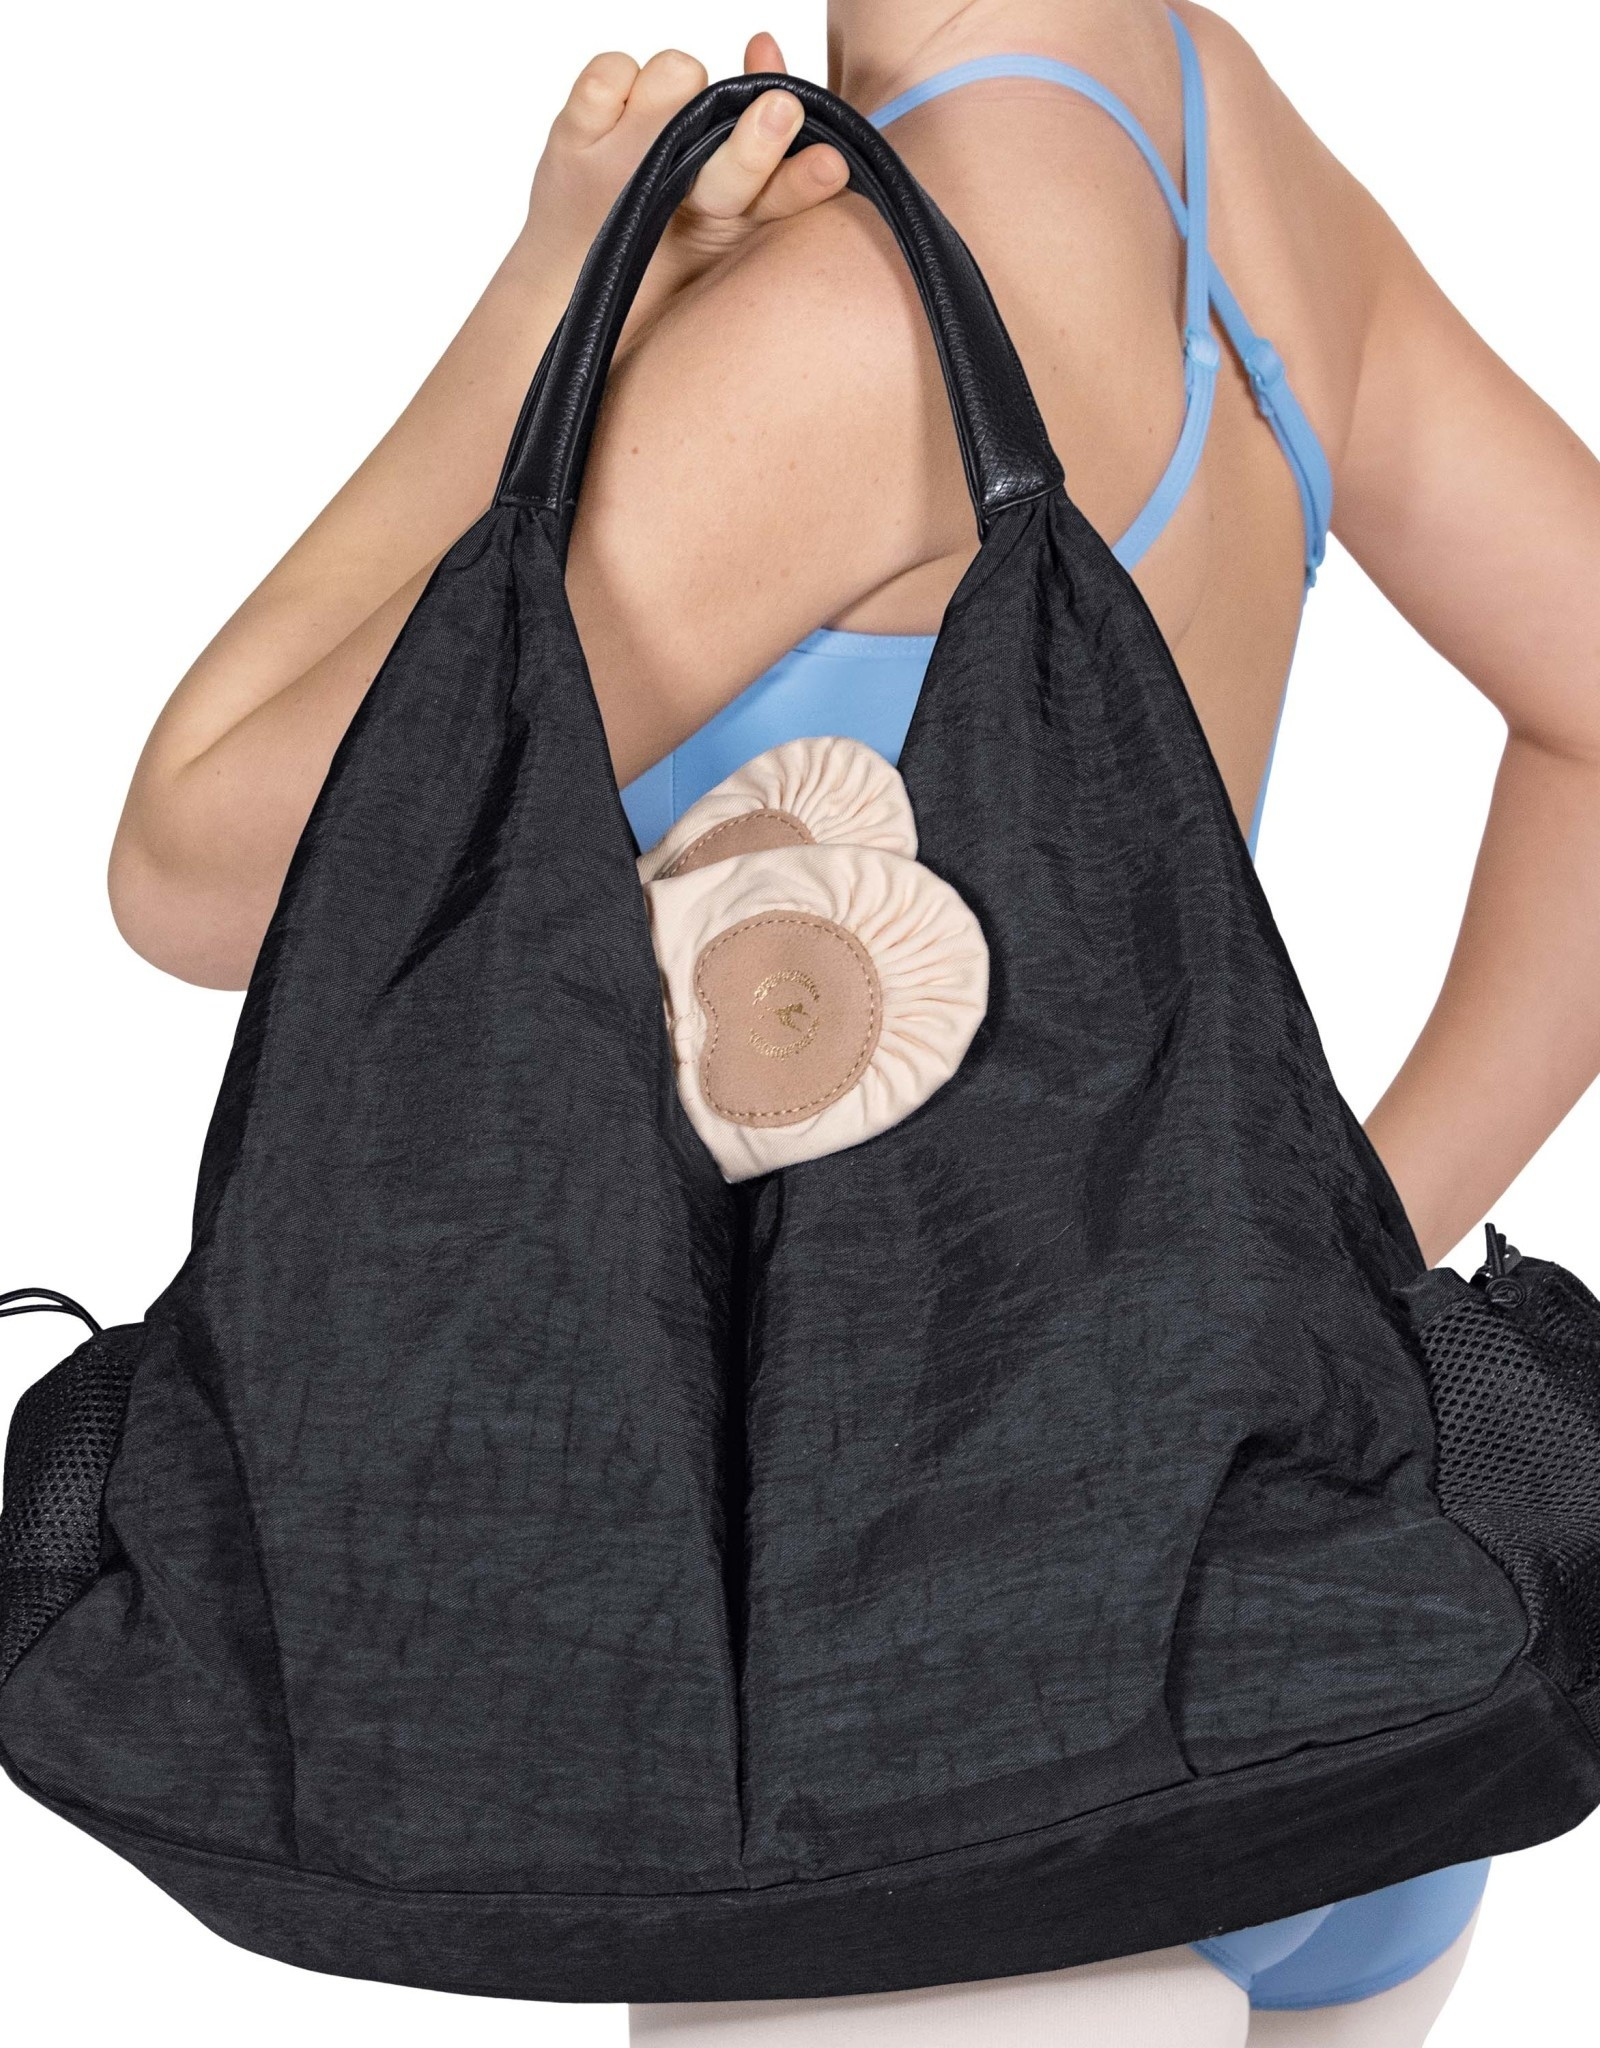 Eurotard Tote-Ally Chic Gym Bag